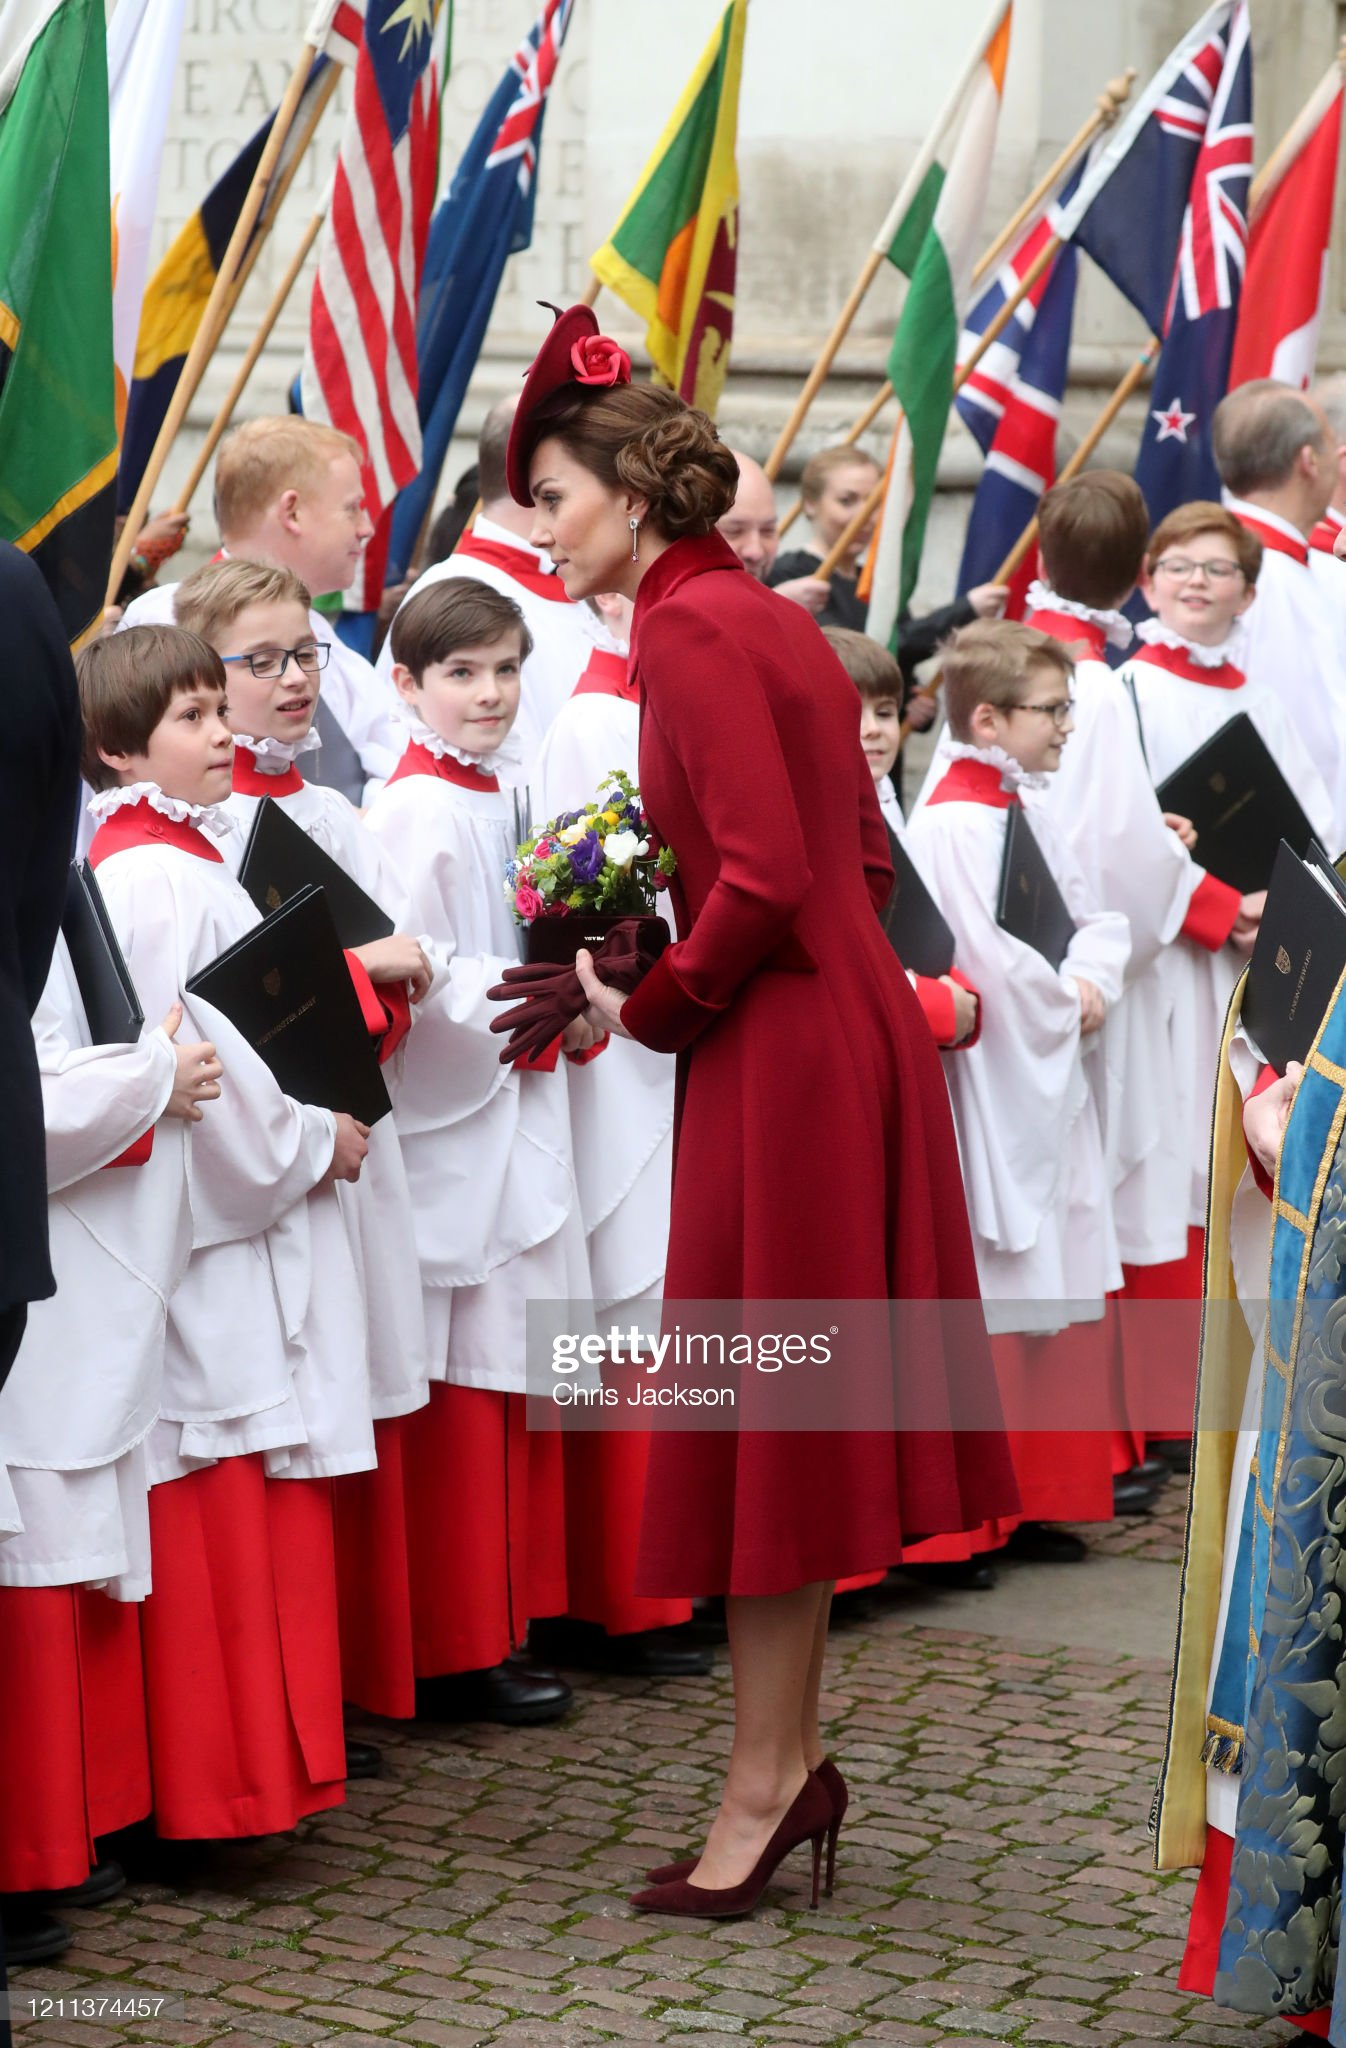 https://media.gettyimages.com/photos/catherine-duchess-of-cambridge-speaks-to-choir-boys-as-she-departs-picture-id1211374457?s=2048x2048